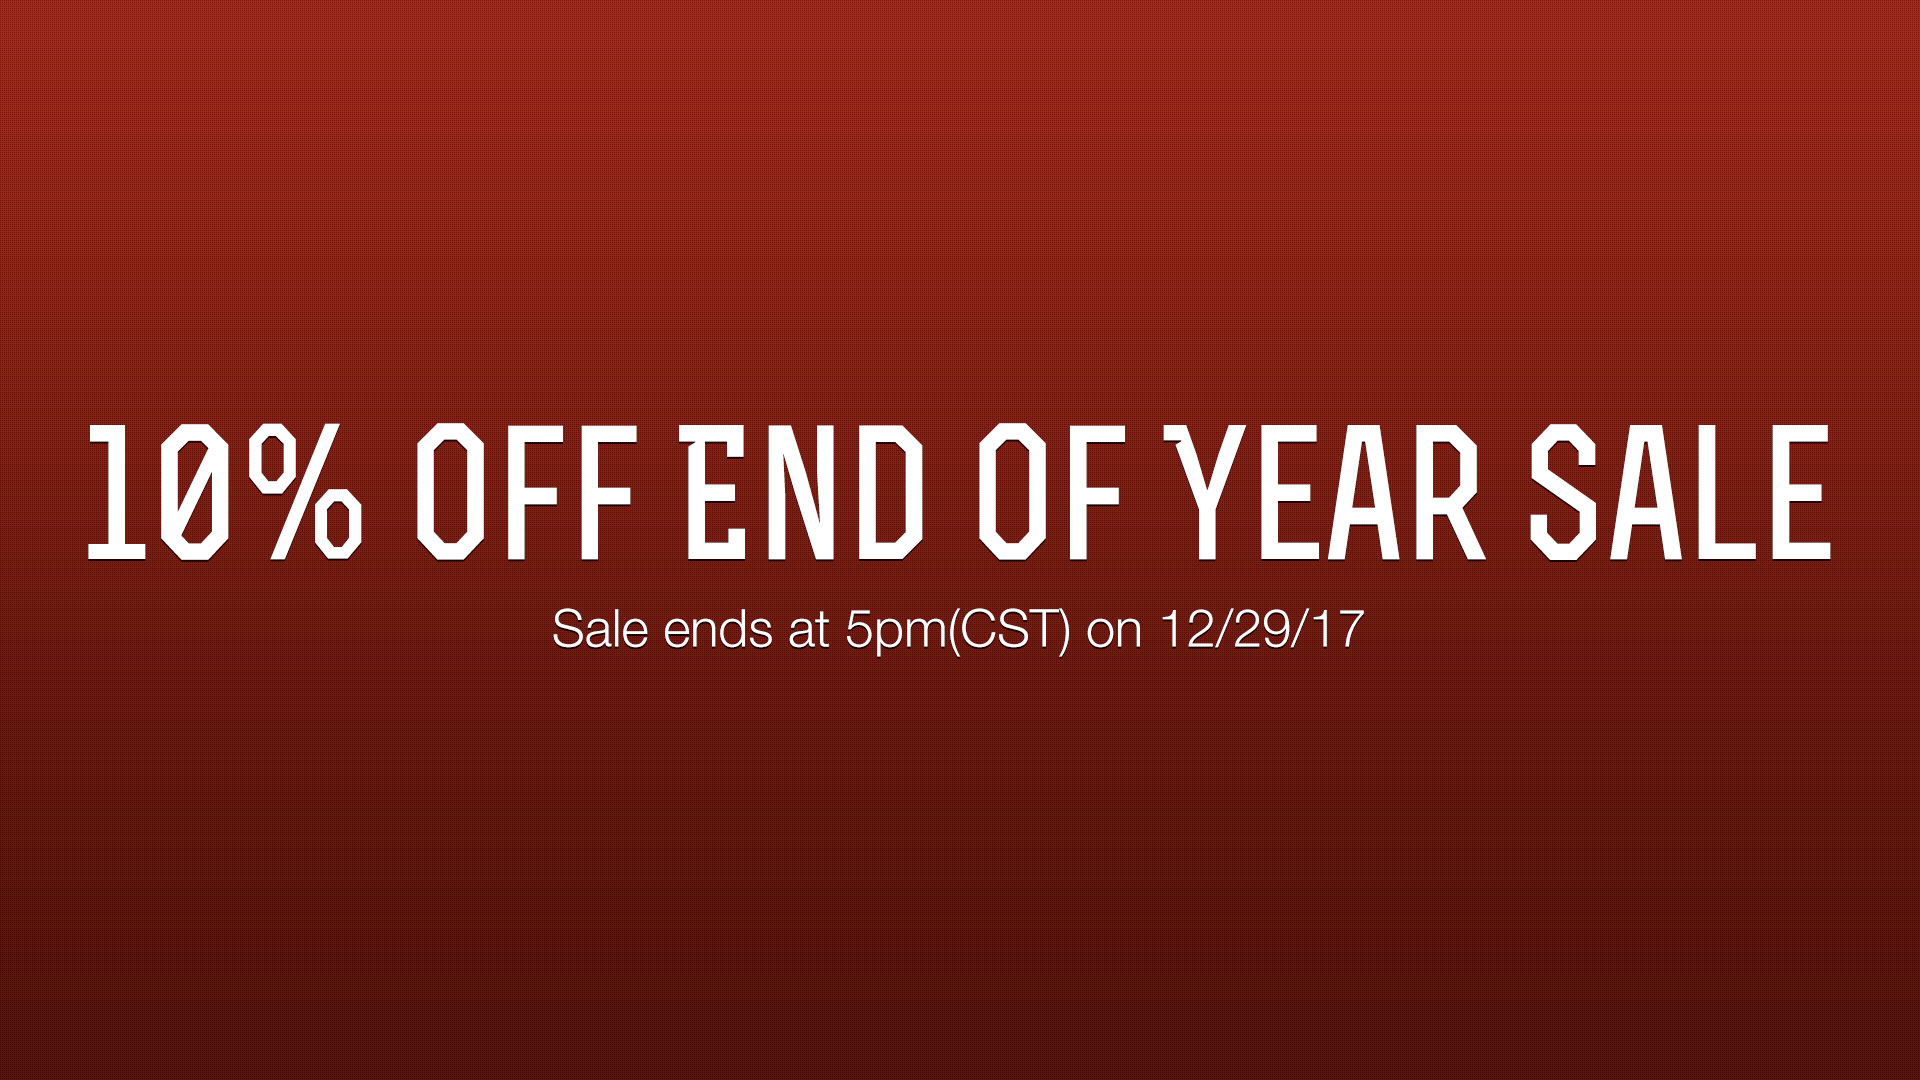 2017 End of Year Sale